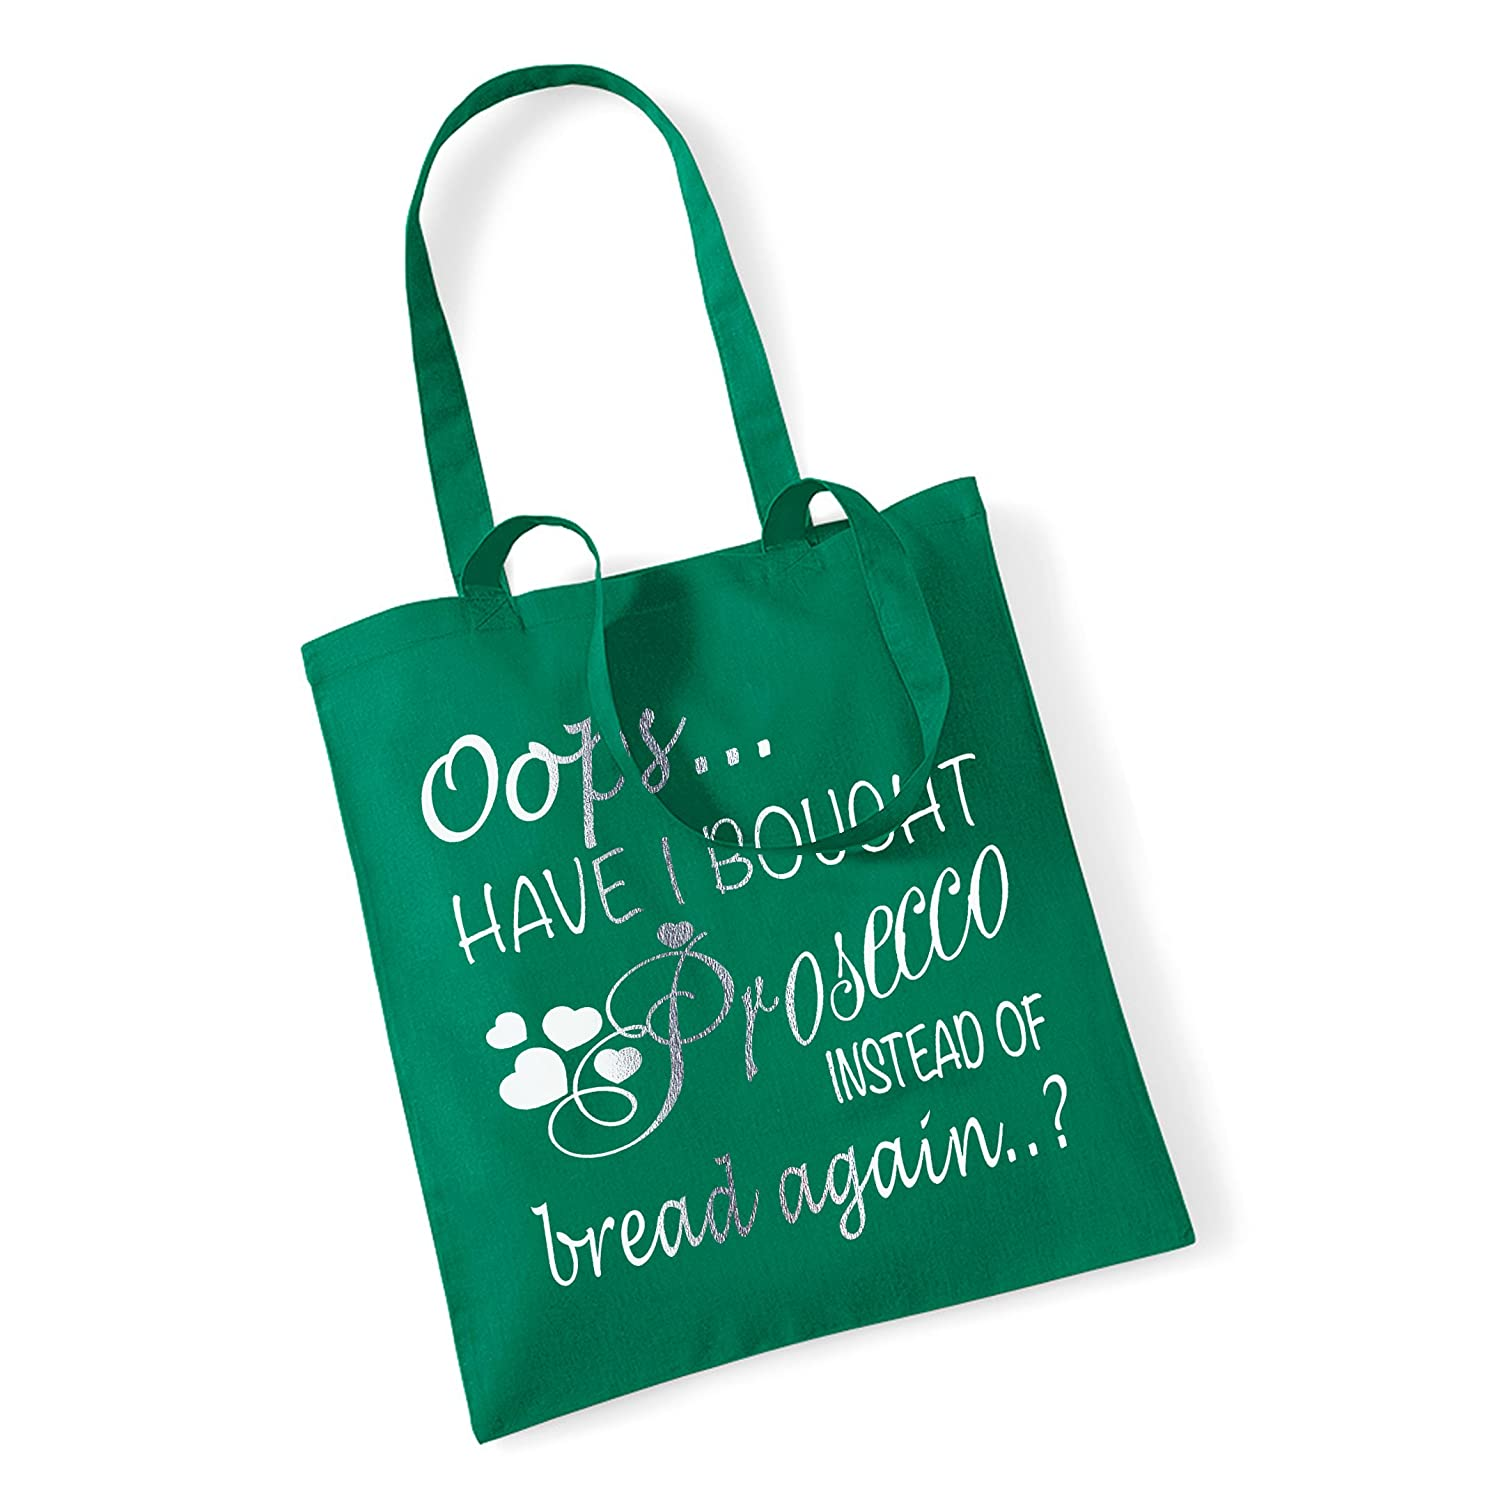 Oops Prosecco Tote Shopping Bag